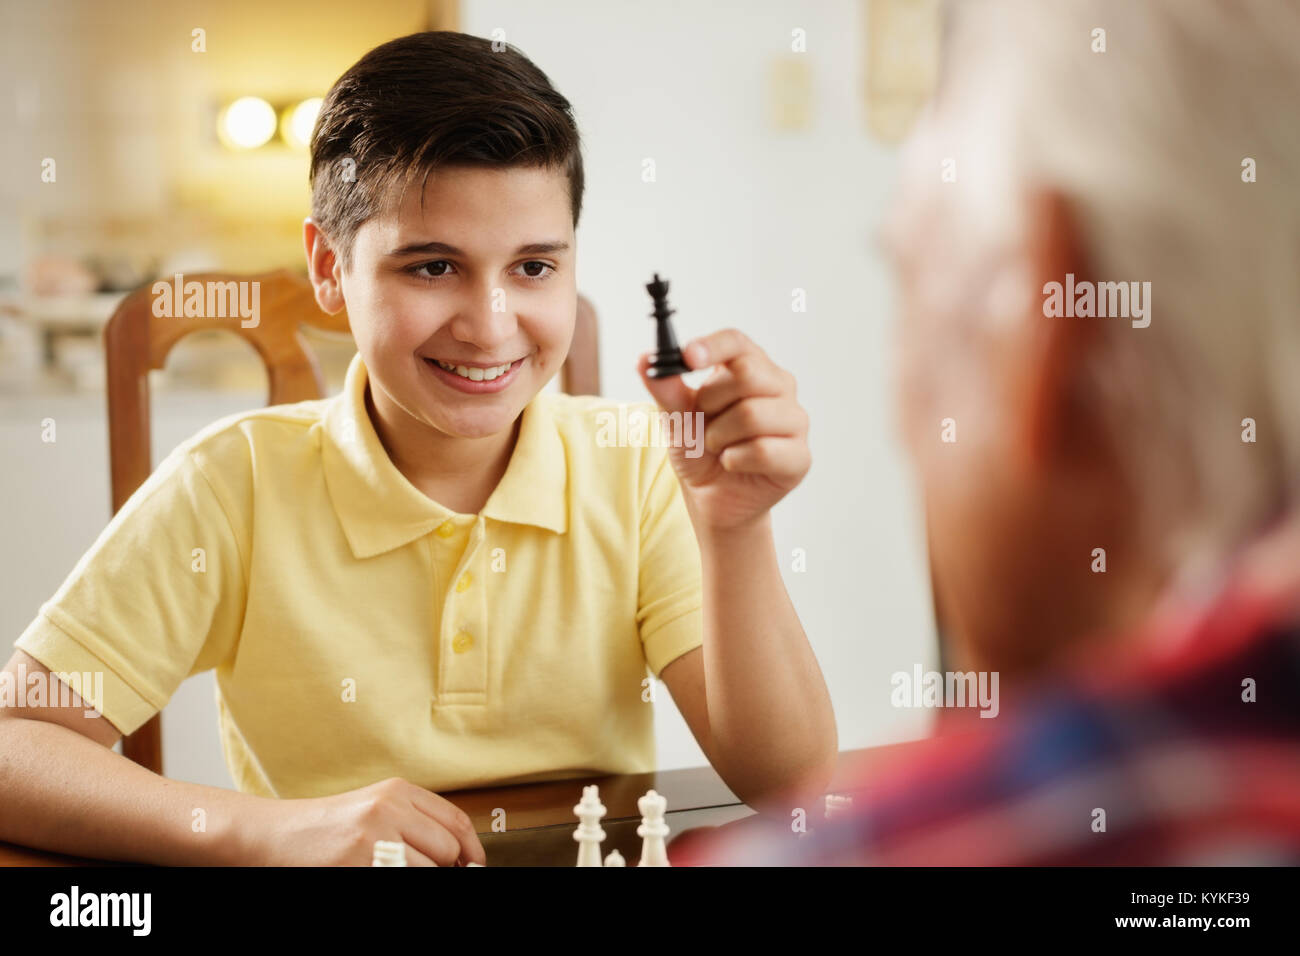 Grandpa Playing Chess Board Game With Grandson At Home - Stock Image